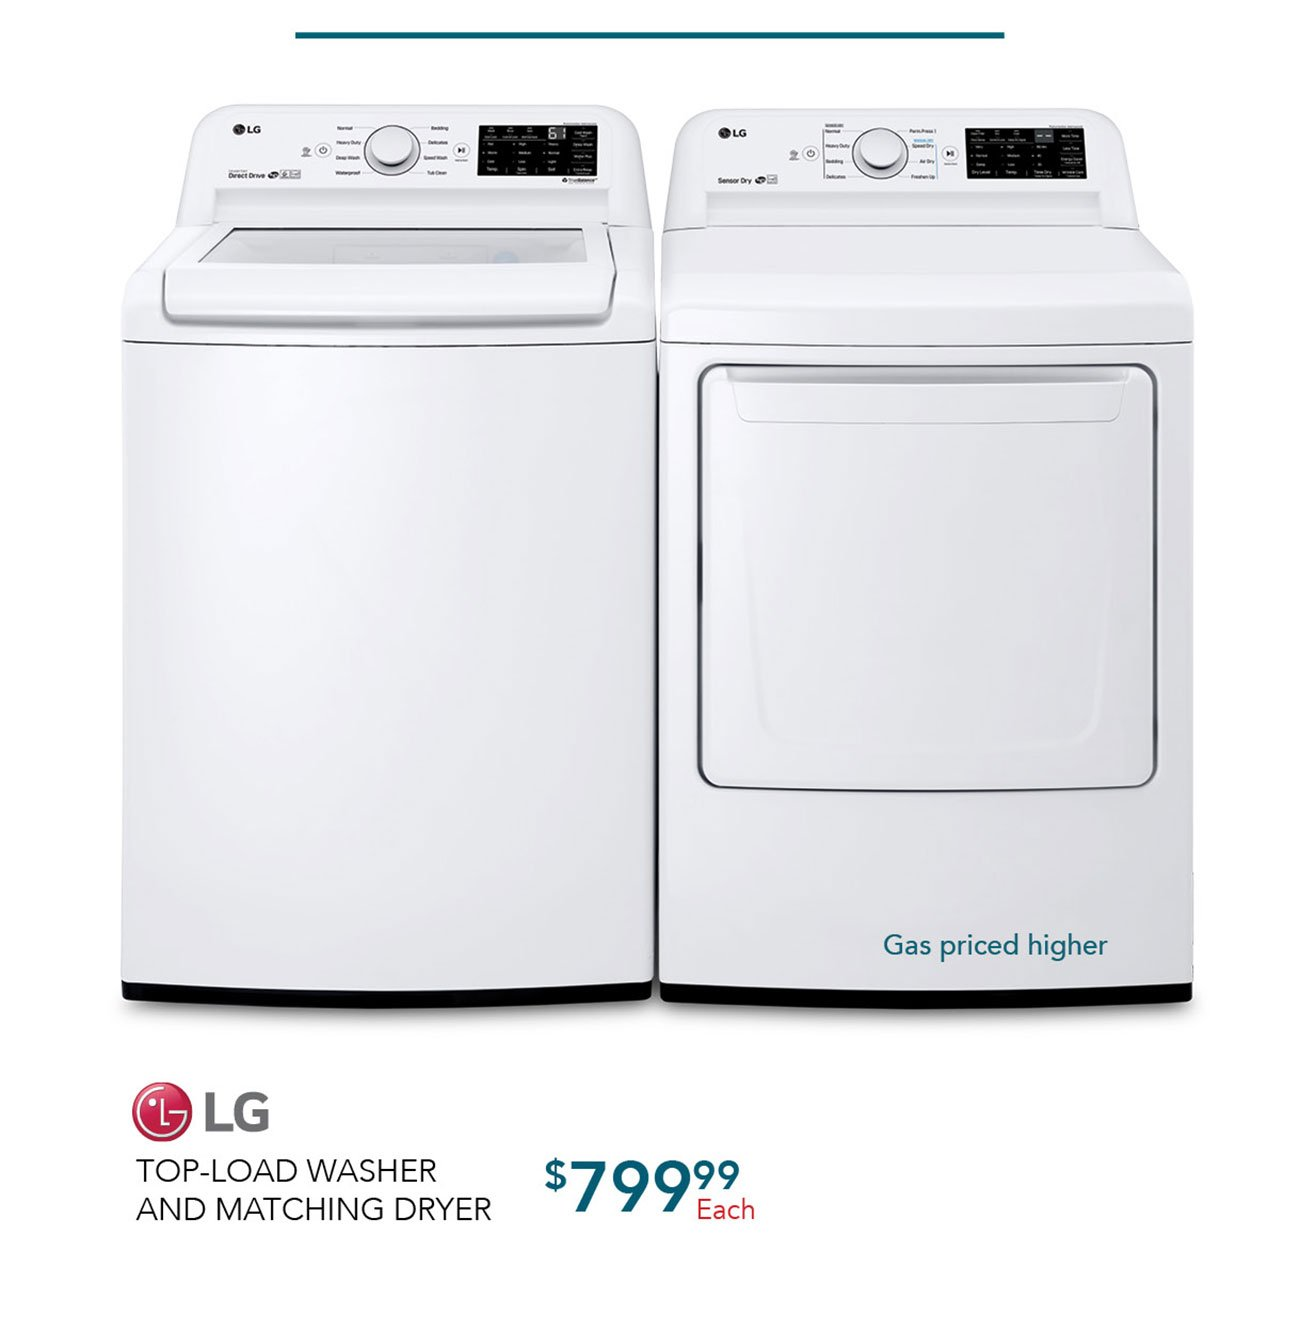 LG-top-load-washer-matching-dryer